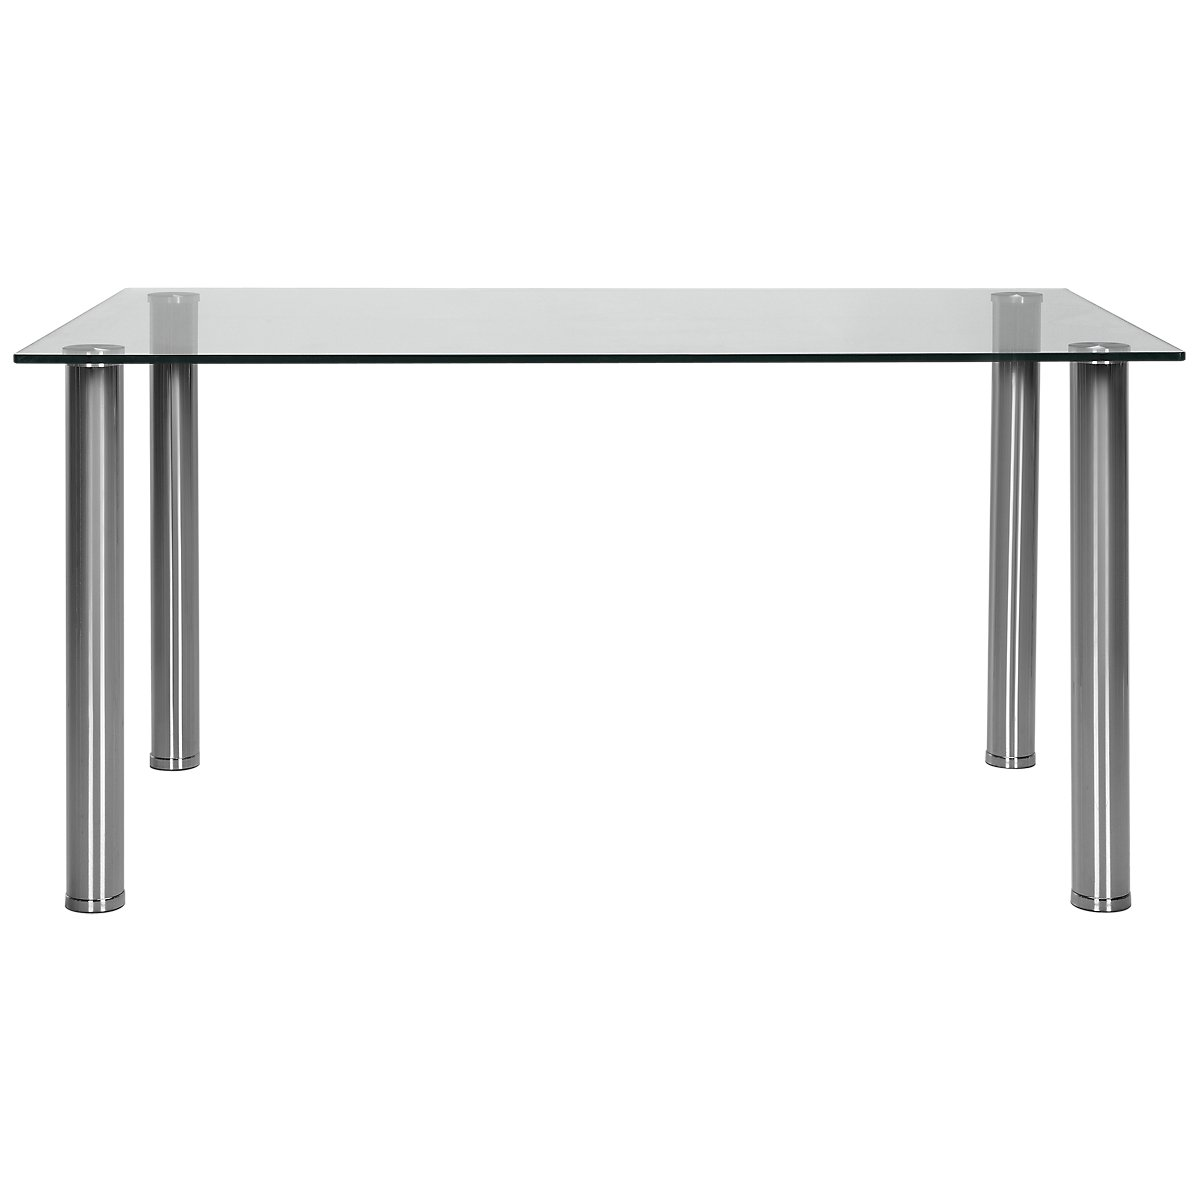 Napoli Glass Rectangular Table